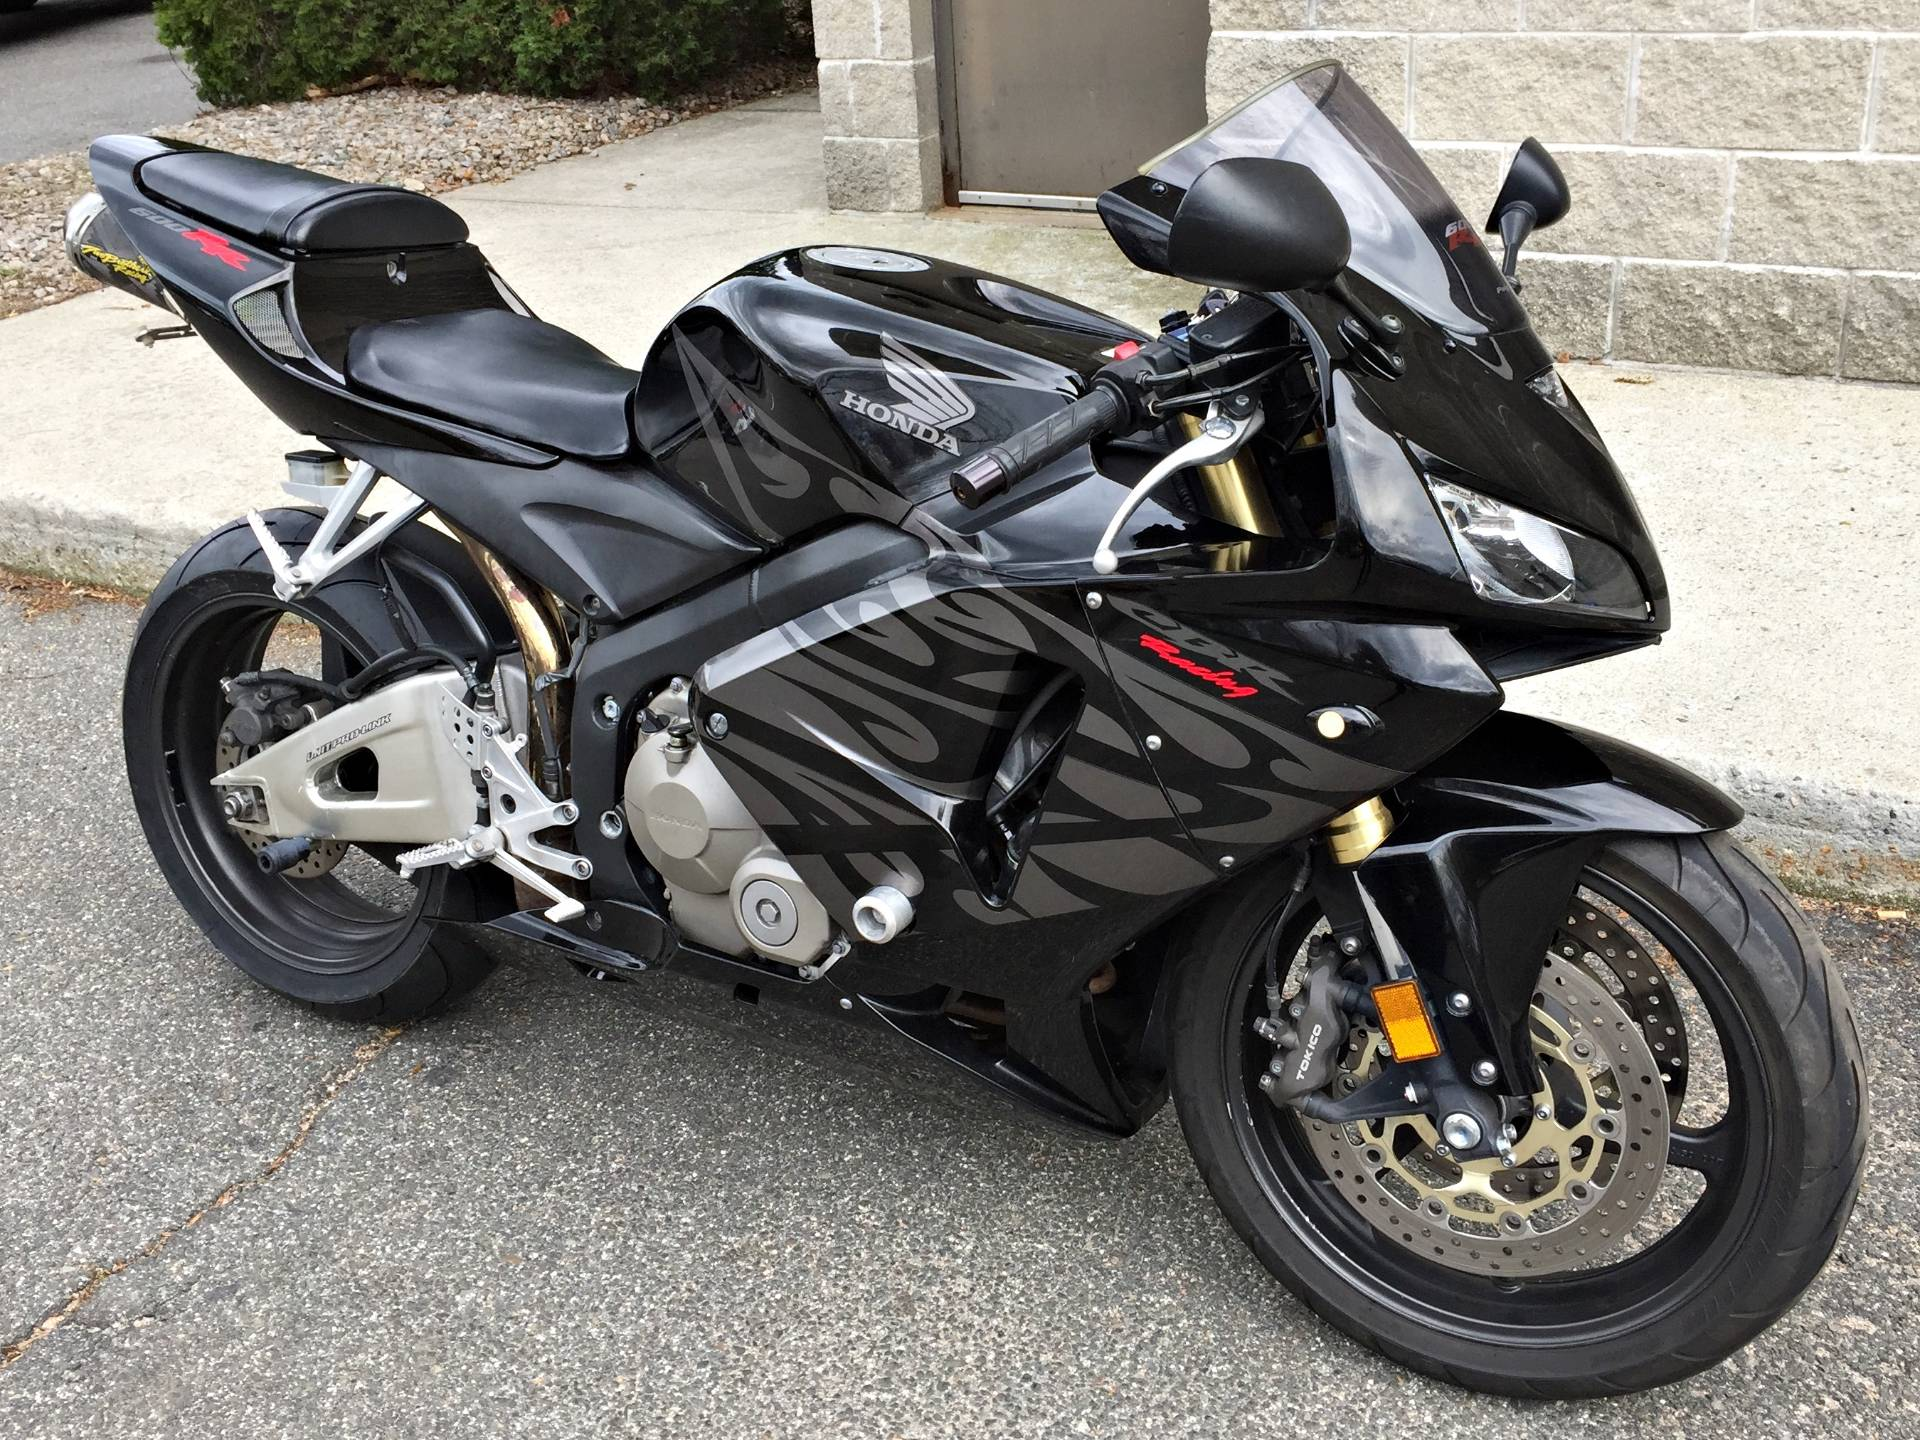 used 2005 honda cbr 600rr motorcycles in enfield ct stock number n a. Black Bedroom Furniture Sets. Home Design Ideas